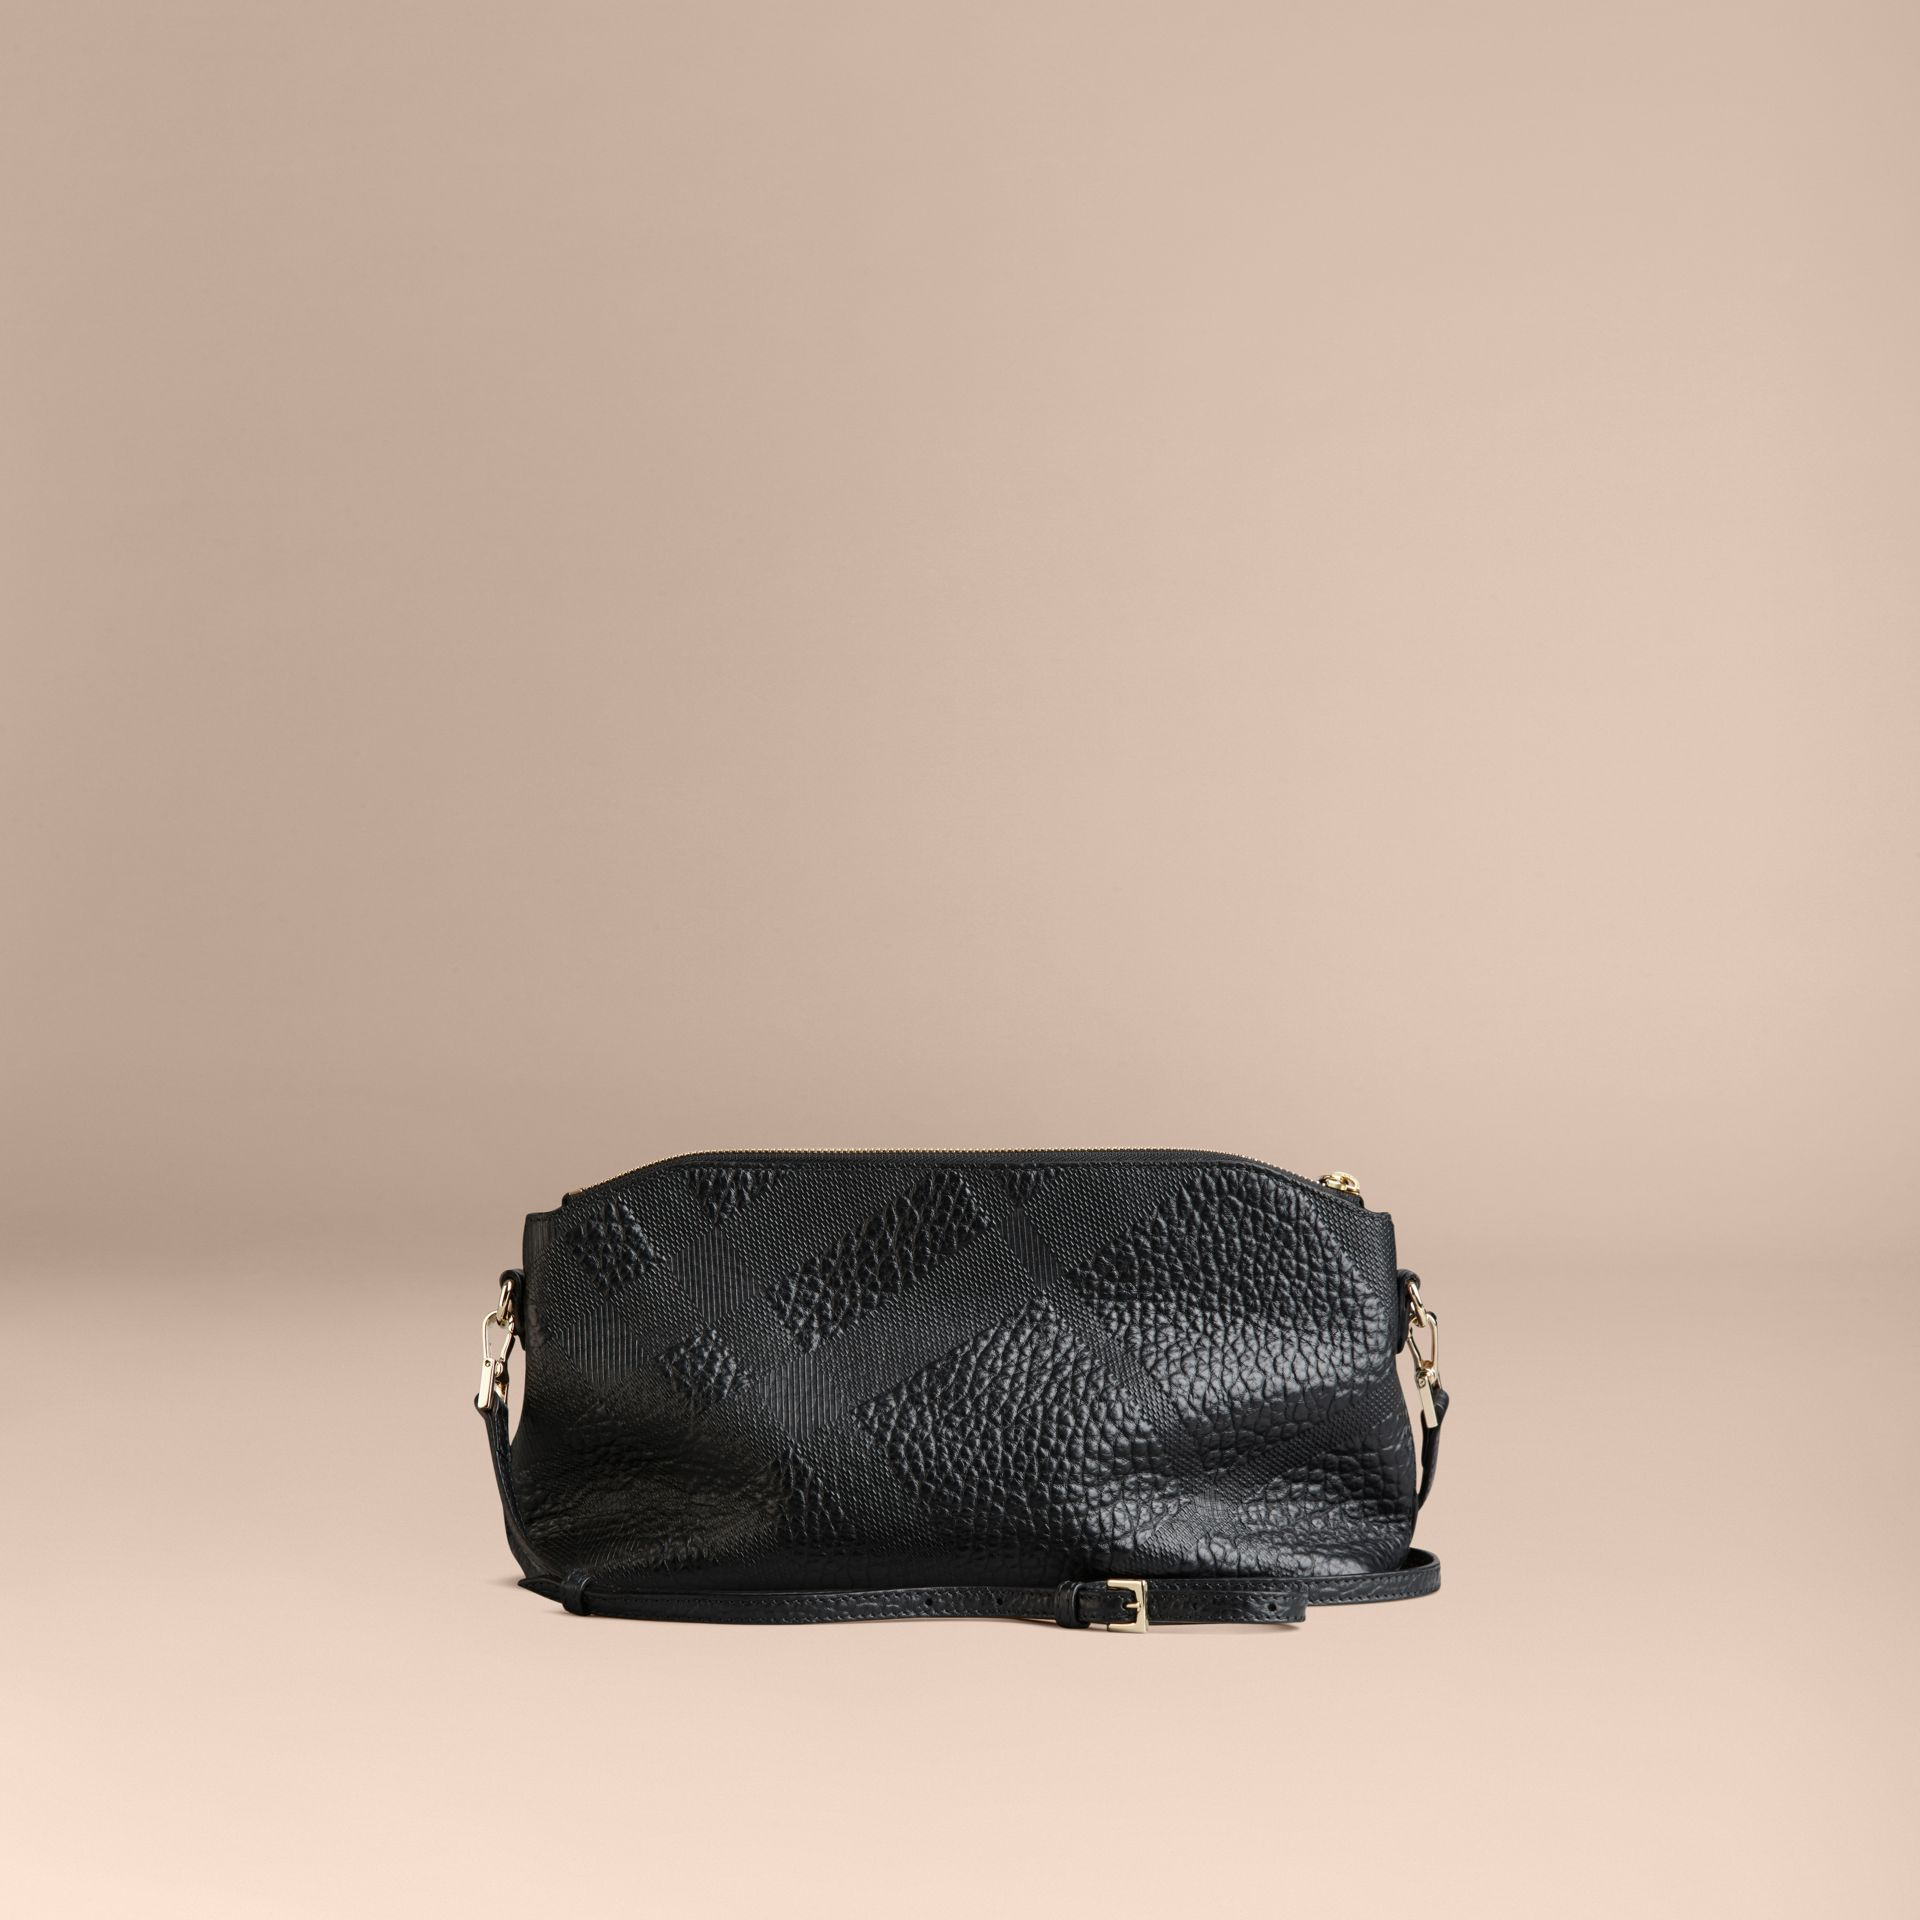 Black Small Embossed Check Leather Clutch Bag Black - gallery image 4